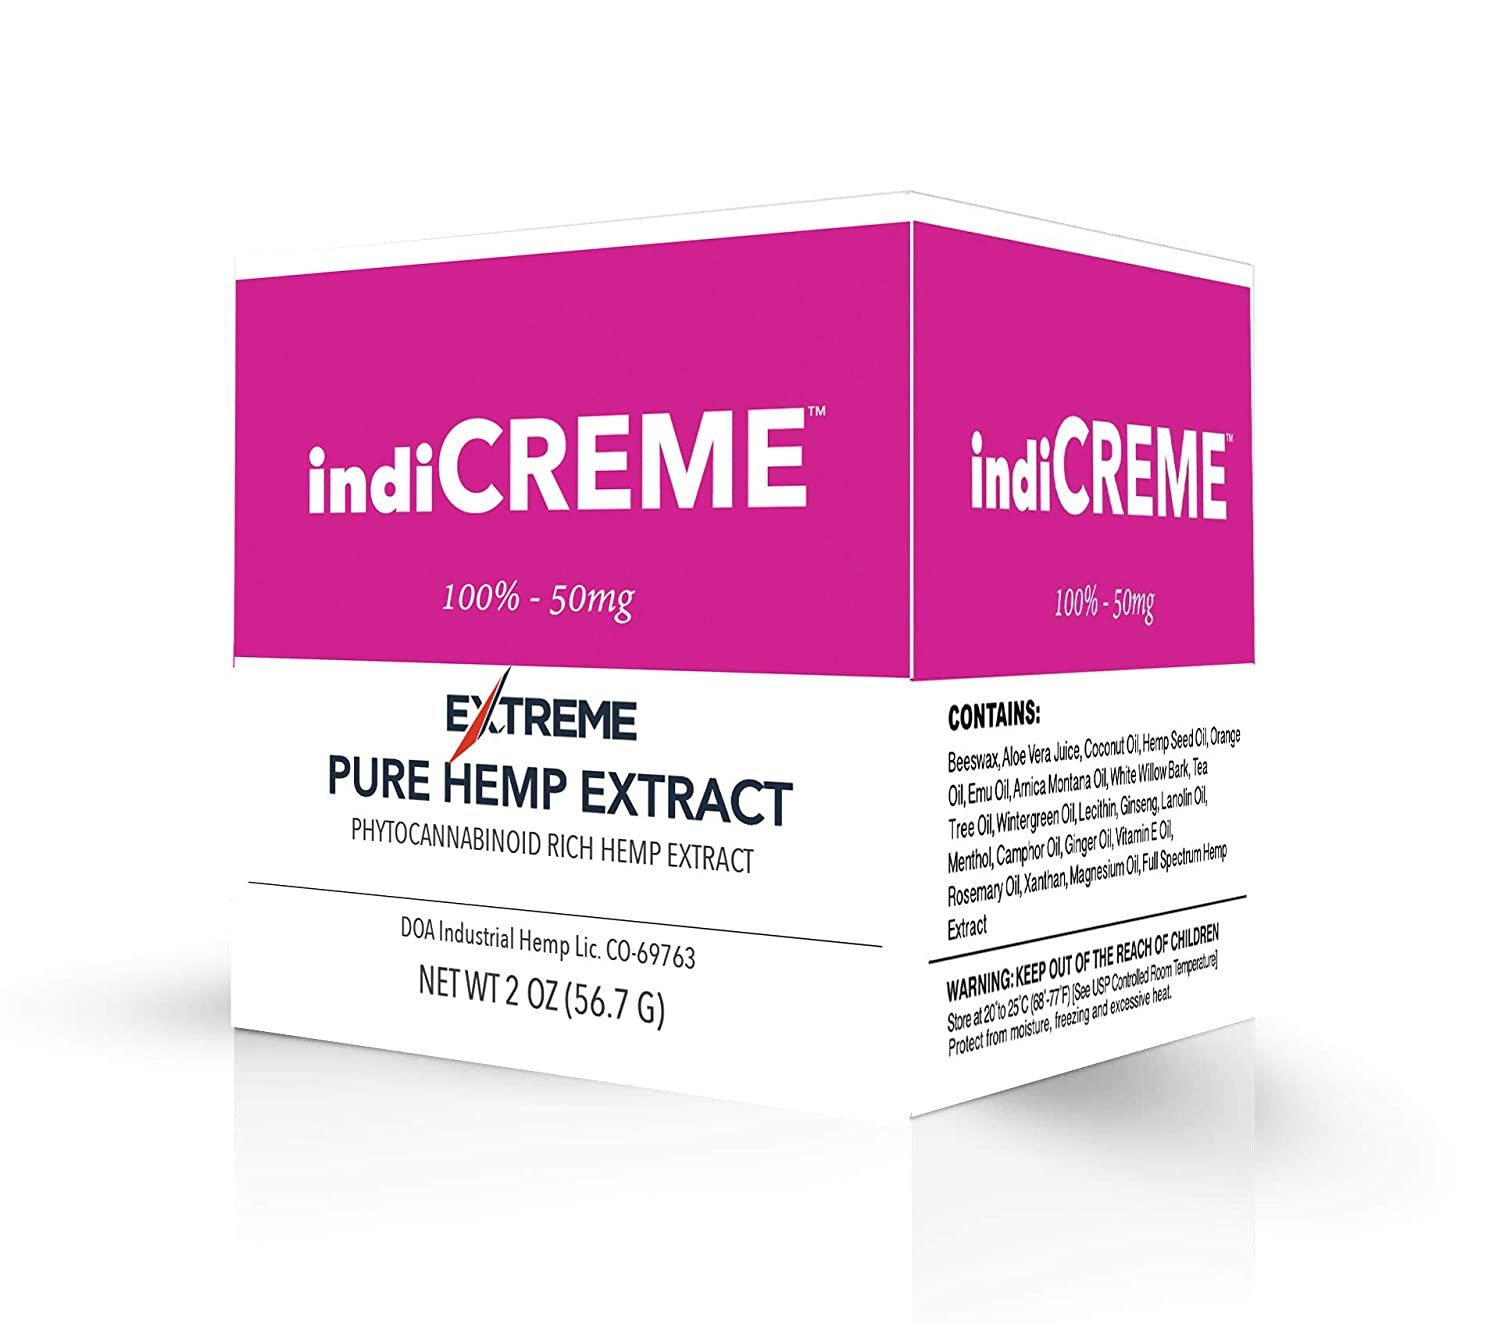 indiCREME Extreme Formula Topical Cream – All-Natural Ingredients - 2 Ounce Jar